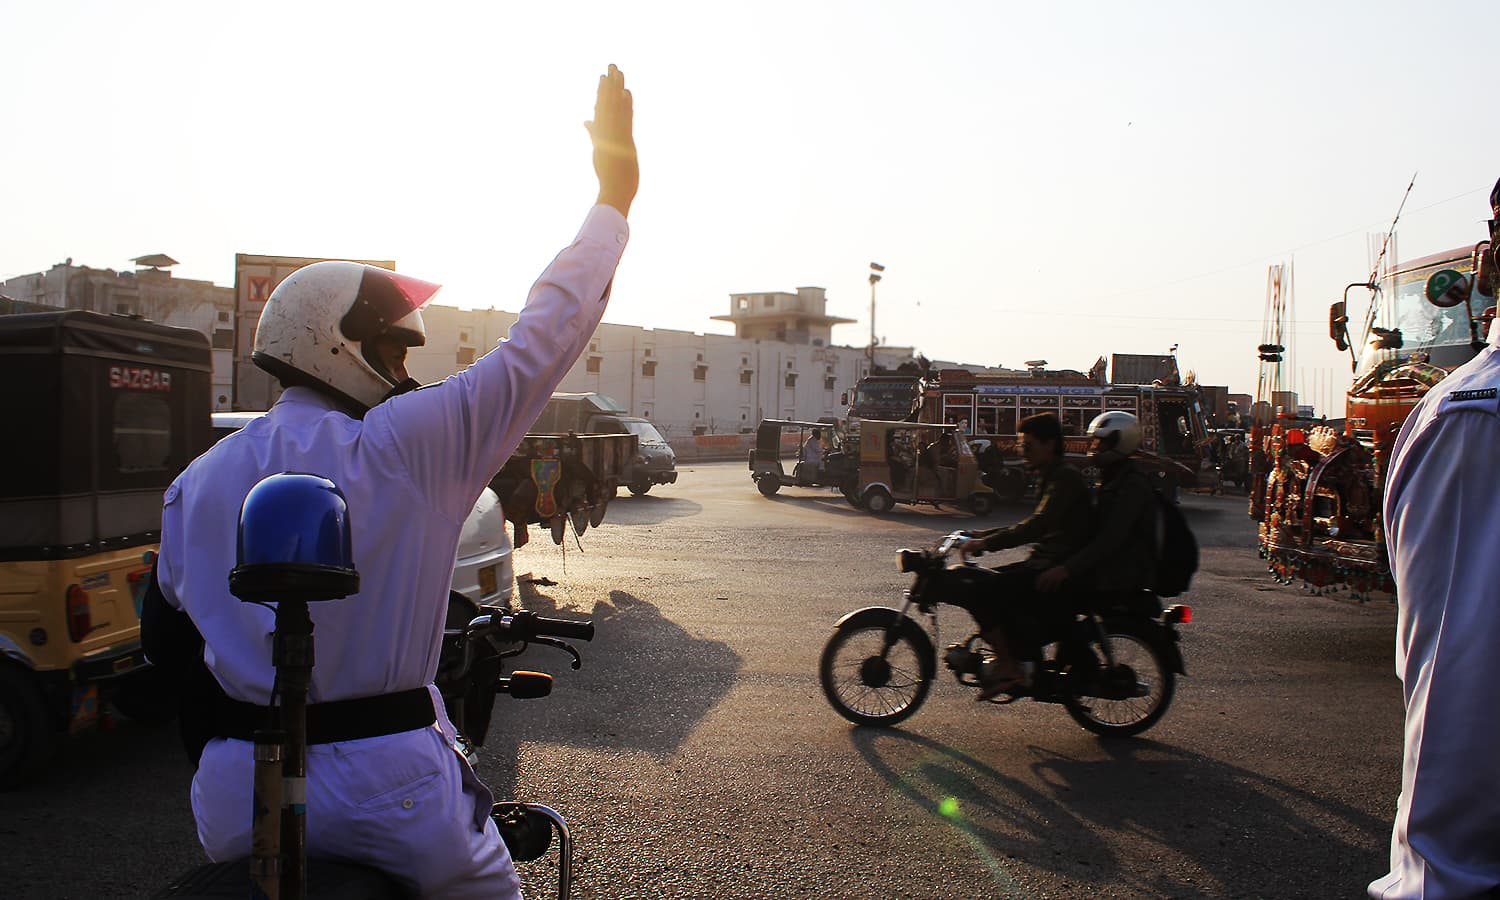 The life of a Karachi traffic warden: Not just 'chai paani' and 'rishwat'